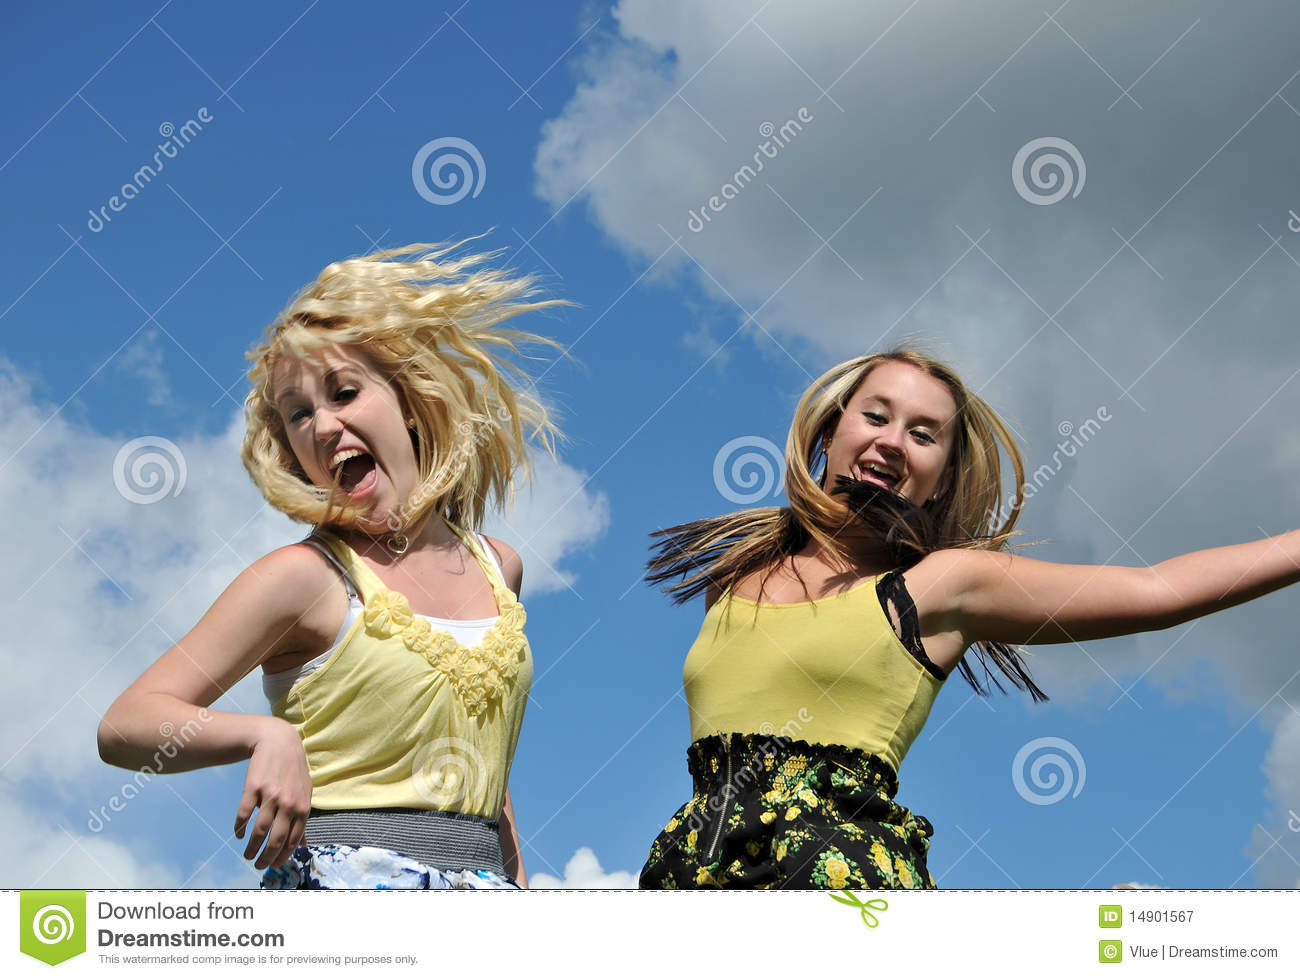 Two girls jumping in the sky